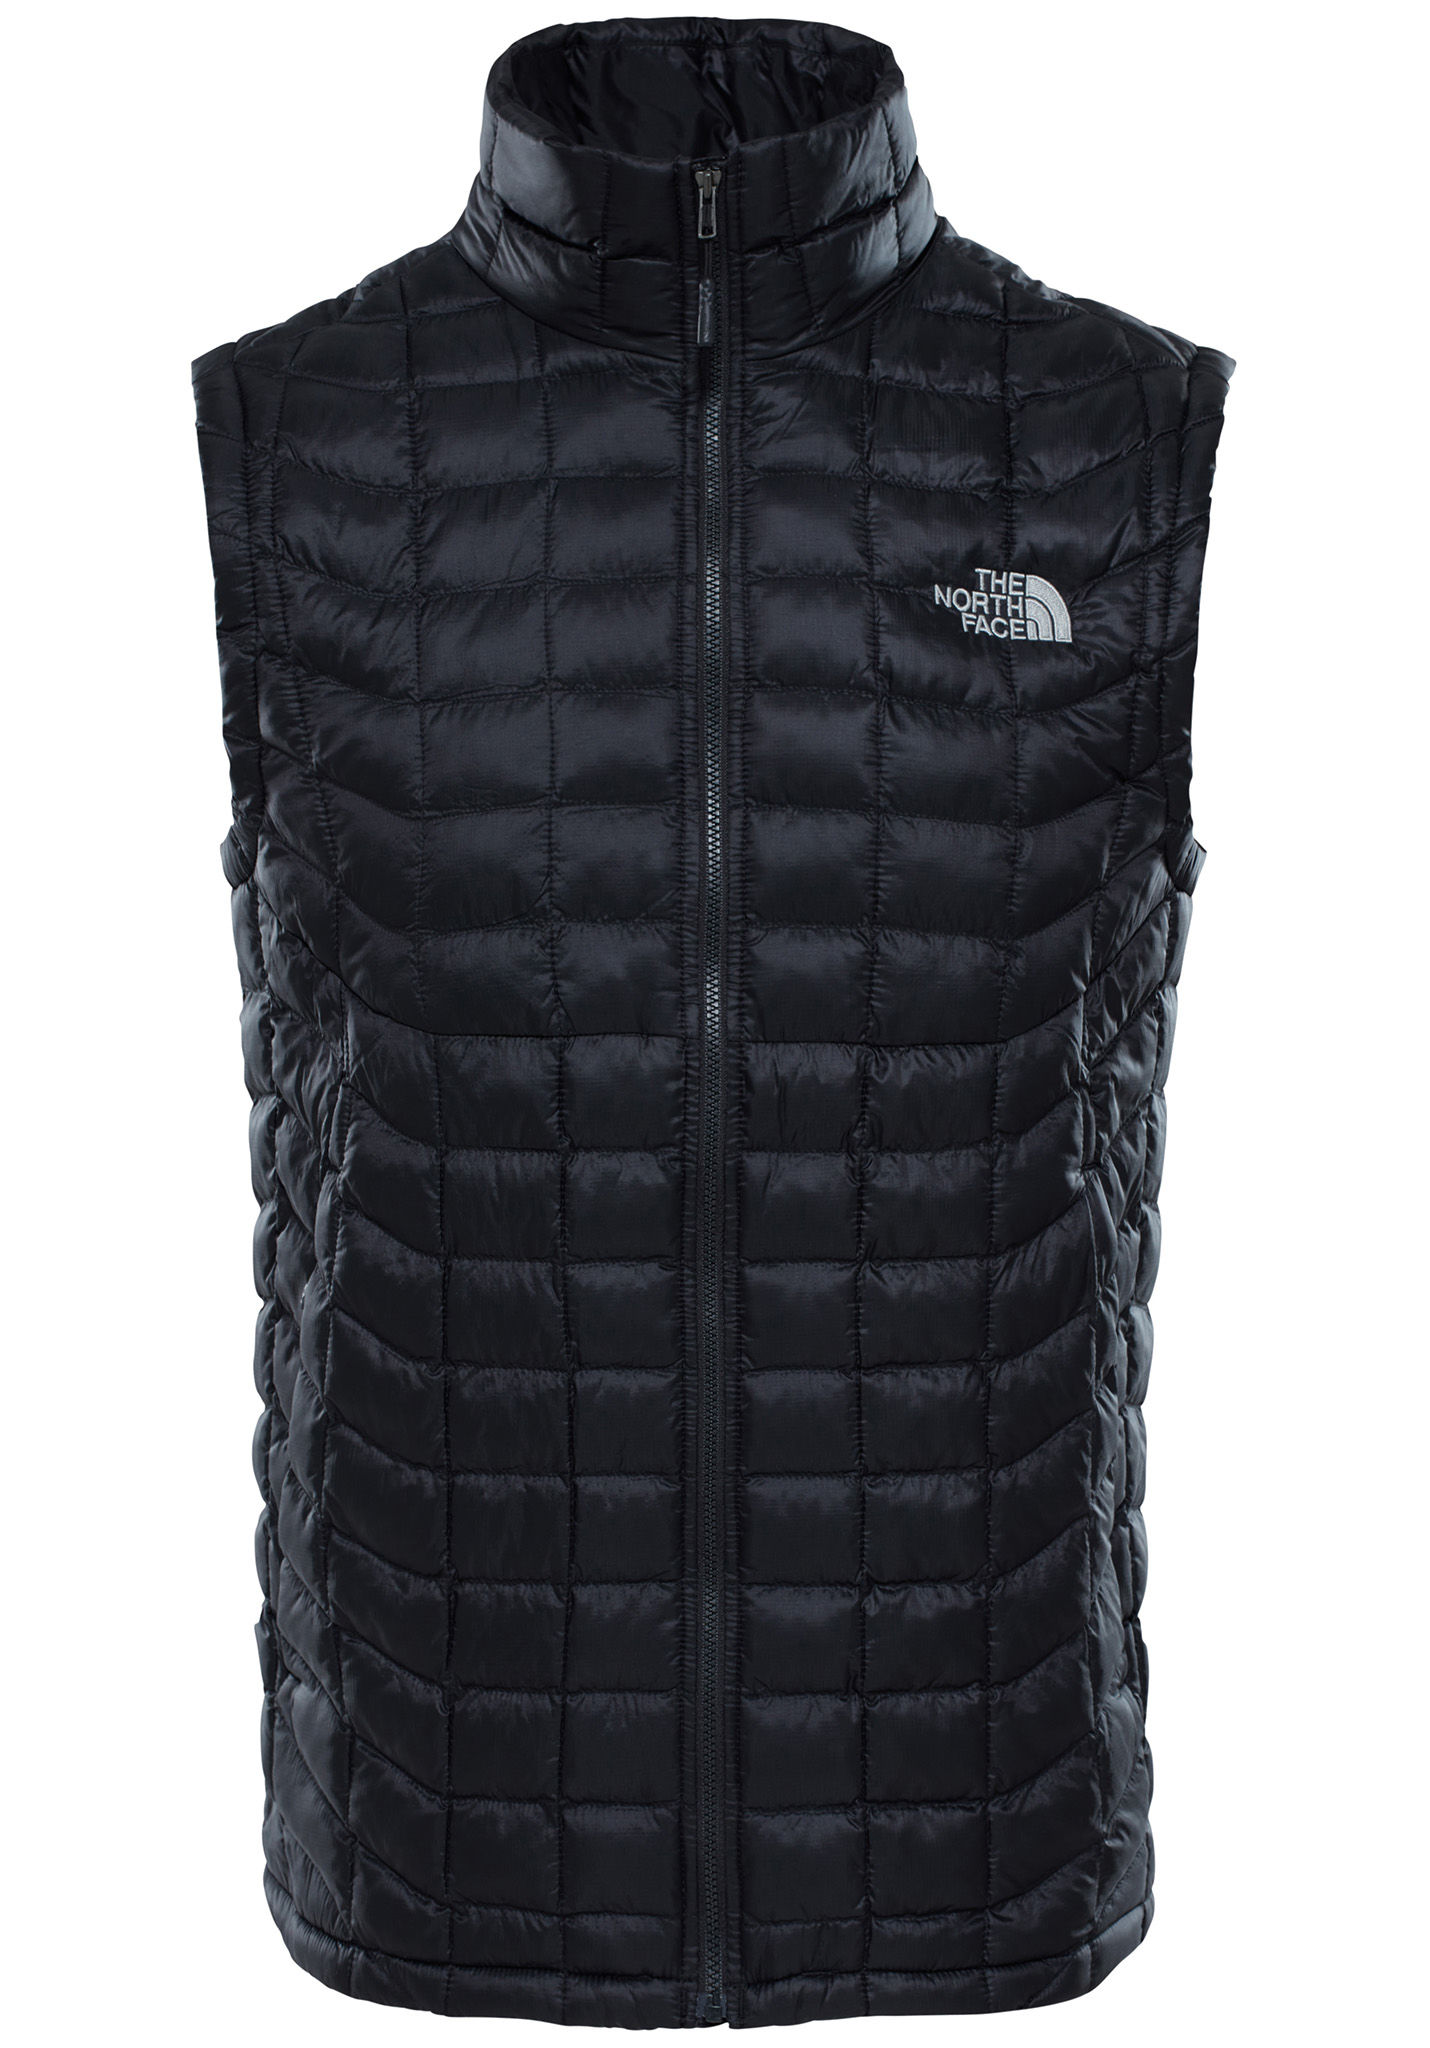 THE NORTH FACE Thermoball - Giacca outdoor per Uomo - Nero - Planet Sports 2ce3053ae2bf